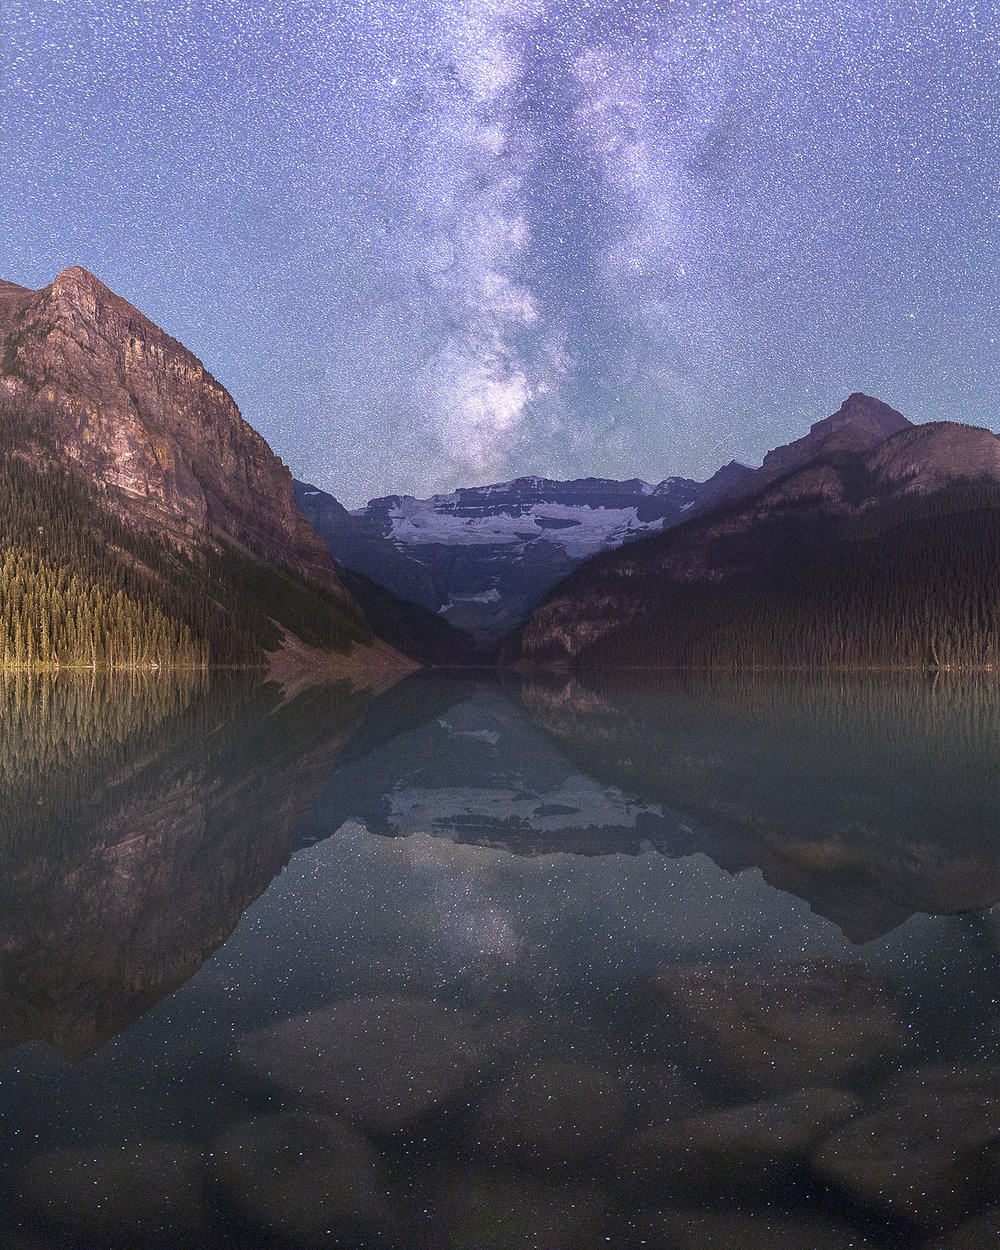 Lake Louise aligns perfectly with the stars.